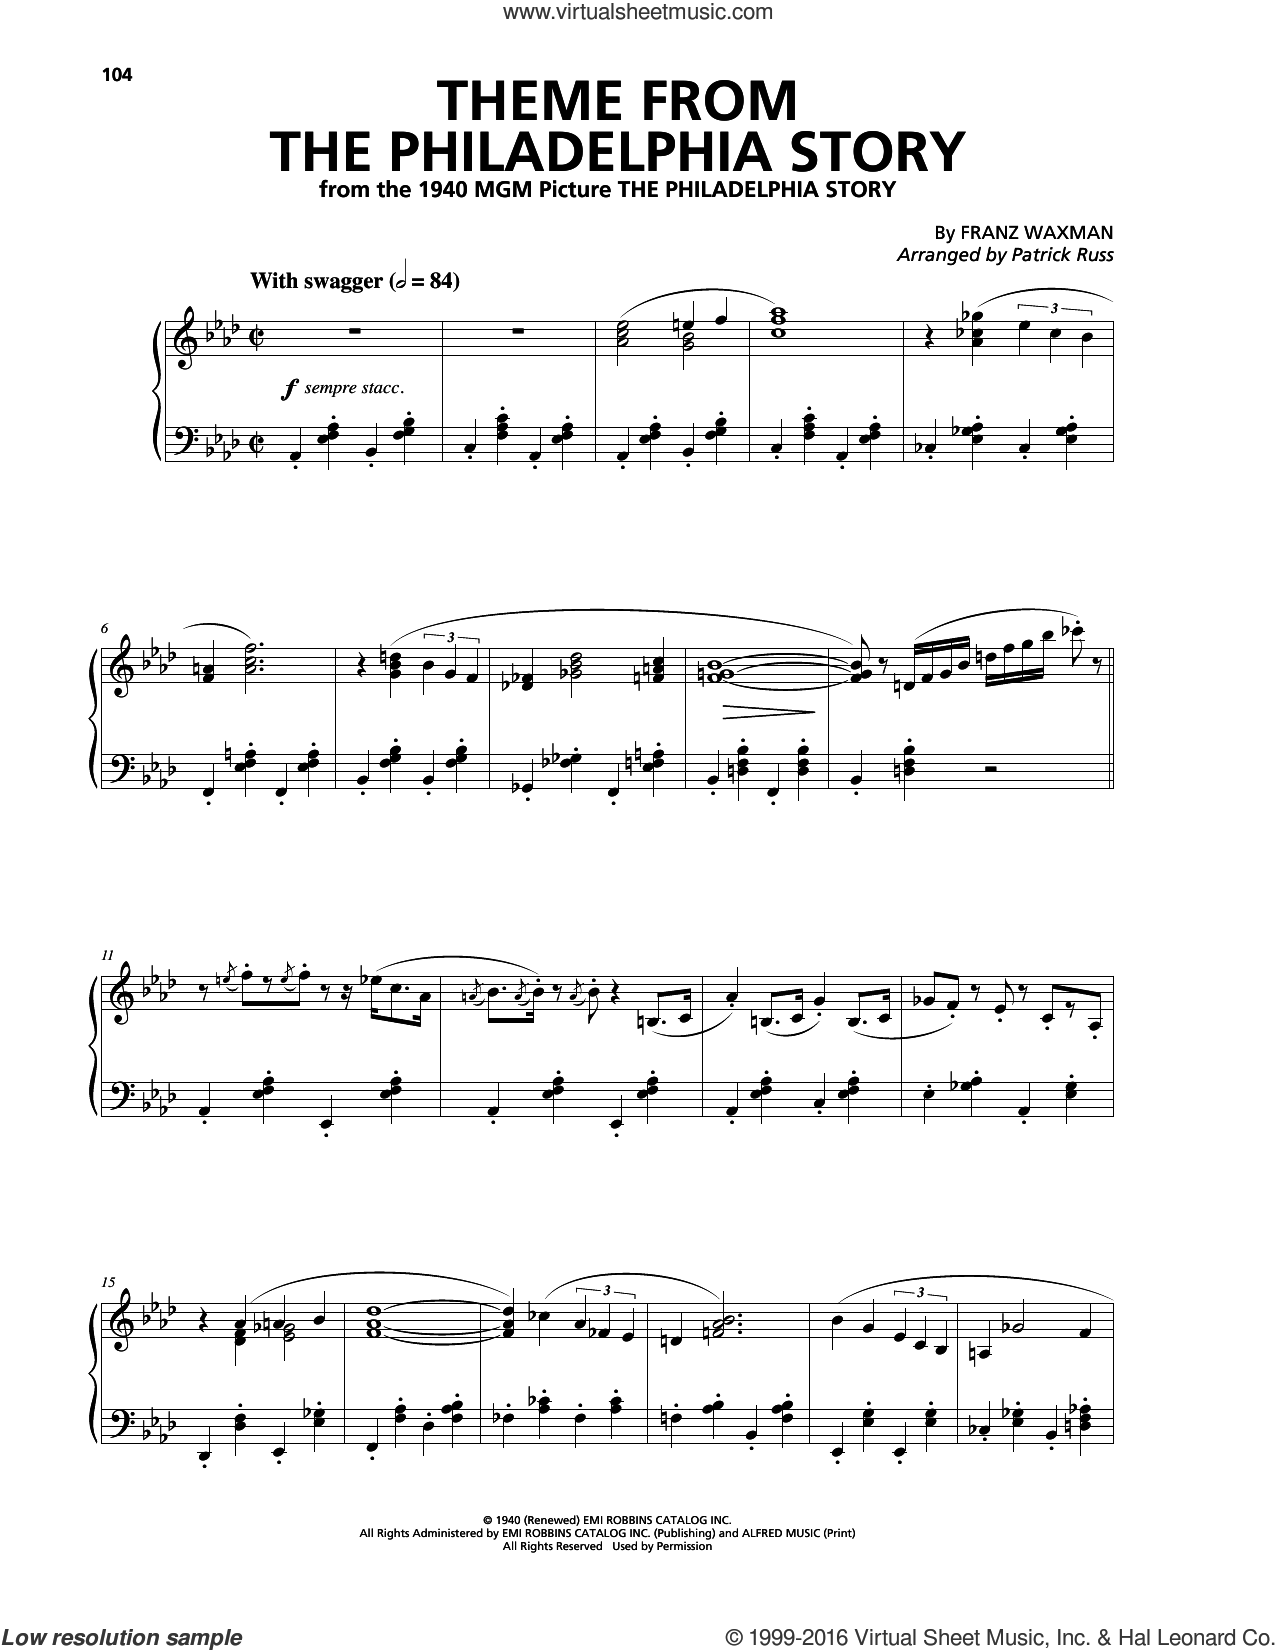 Theme From The Philadelphia Story sheet music for piano solo by Franz Waxman, intermediate skill level